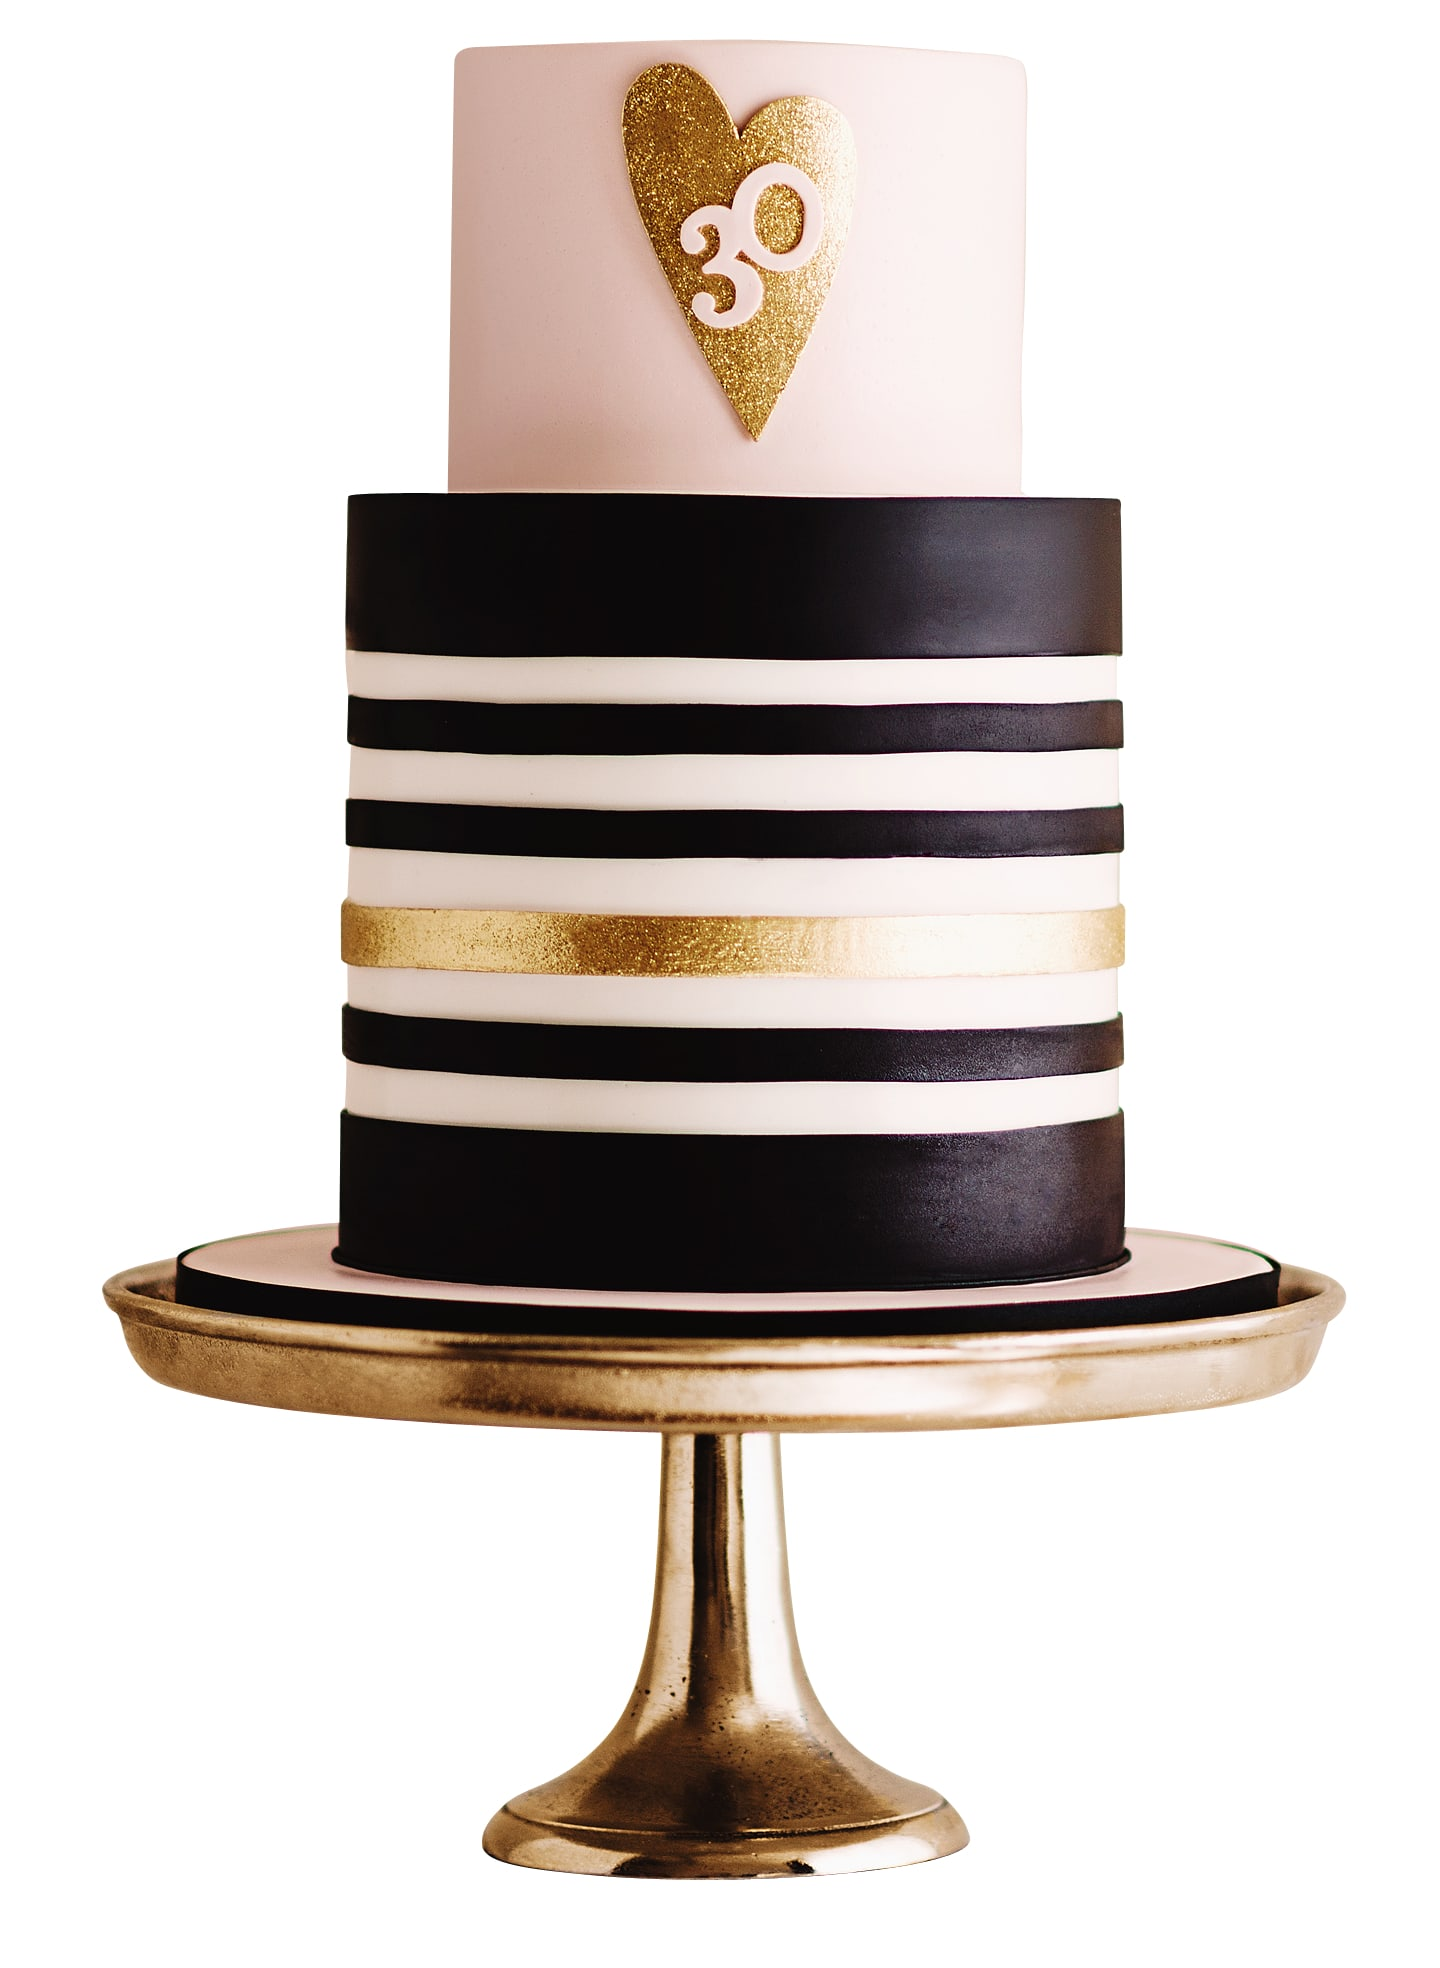 31 most beautiful birthday cake images for inspiration - HD1440×1968